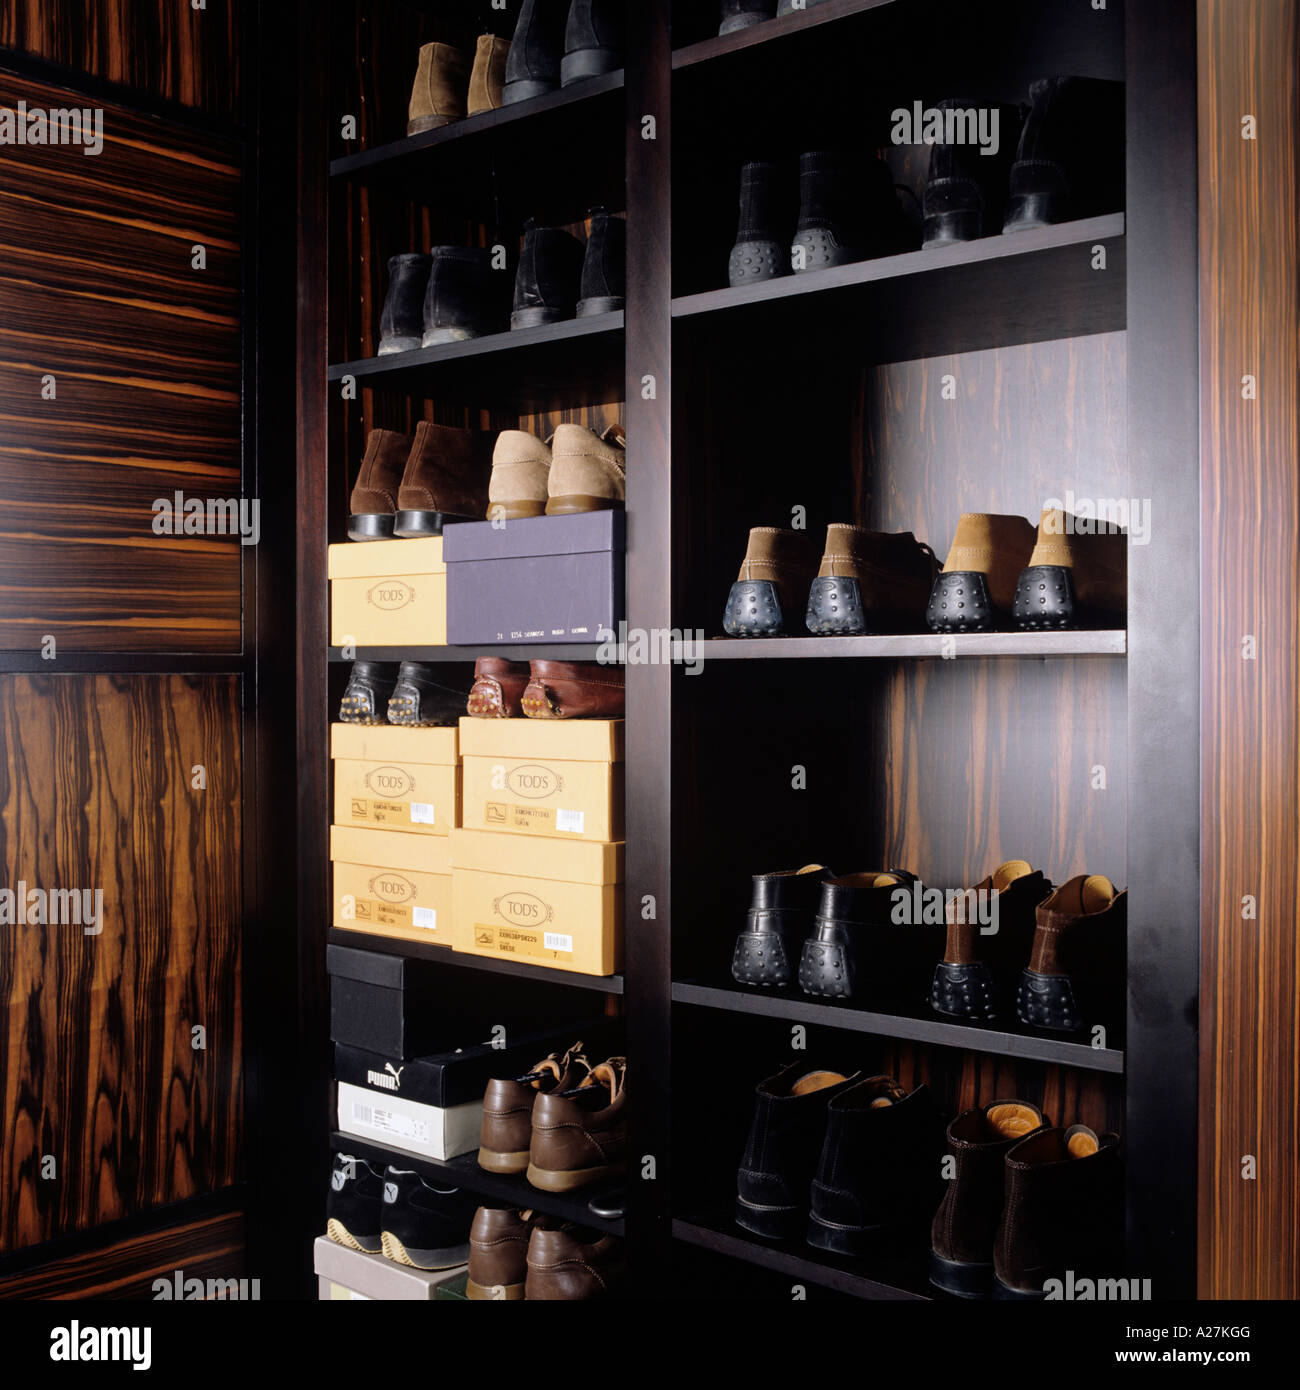 Pairs of shoes stacked neatly on shelves in a walnut cupboard - Stock Image